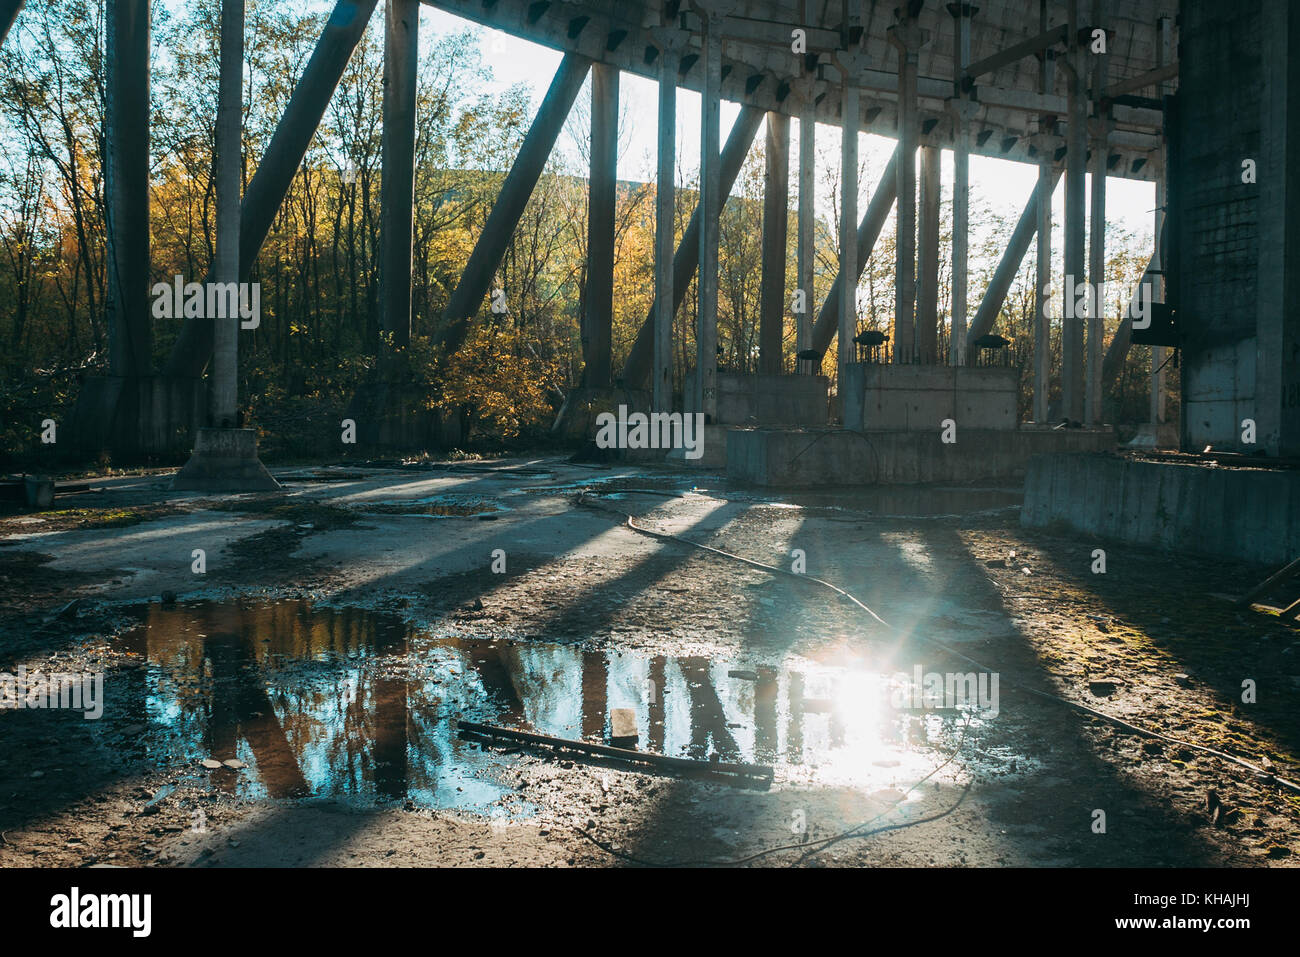 Exploring the inside of an abandoned hyperboloid nuclear cooling tower in Chernobyl, Ukraine one sunny afternoon - Stock Image